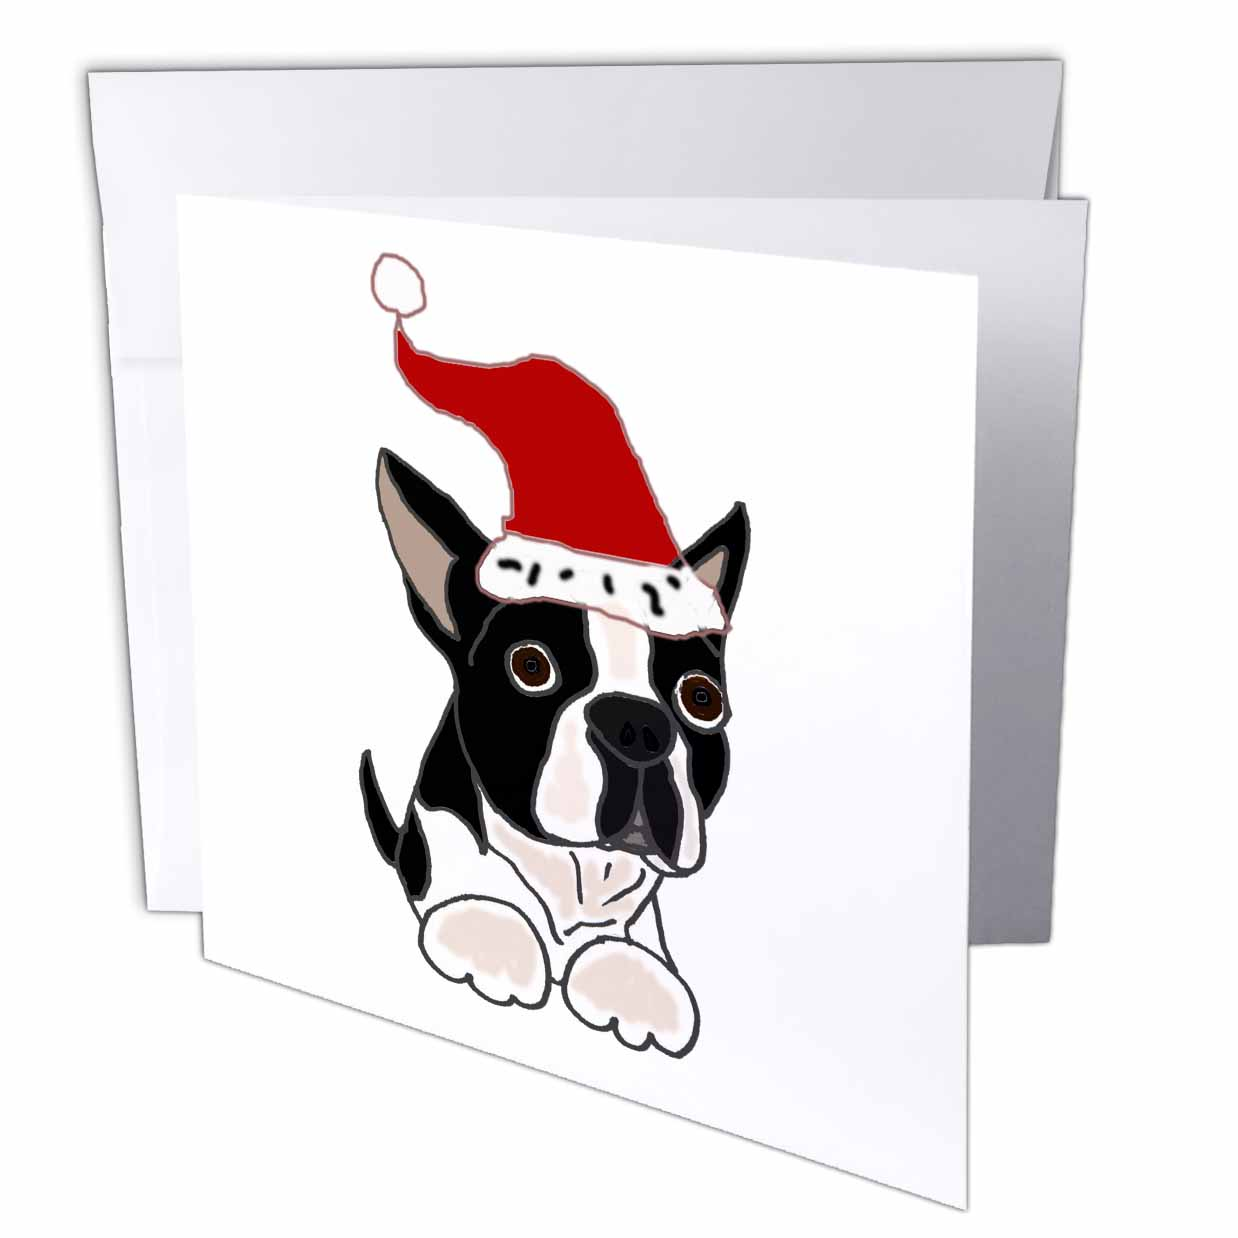 3dRose Funny Christmas Boston Terrier Dog in Santa Hat, Greeting Cards, 6 x 6 inches, set of 6